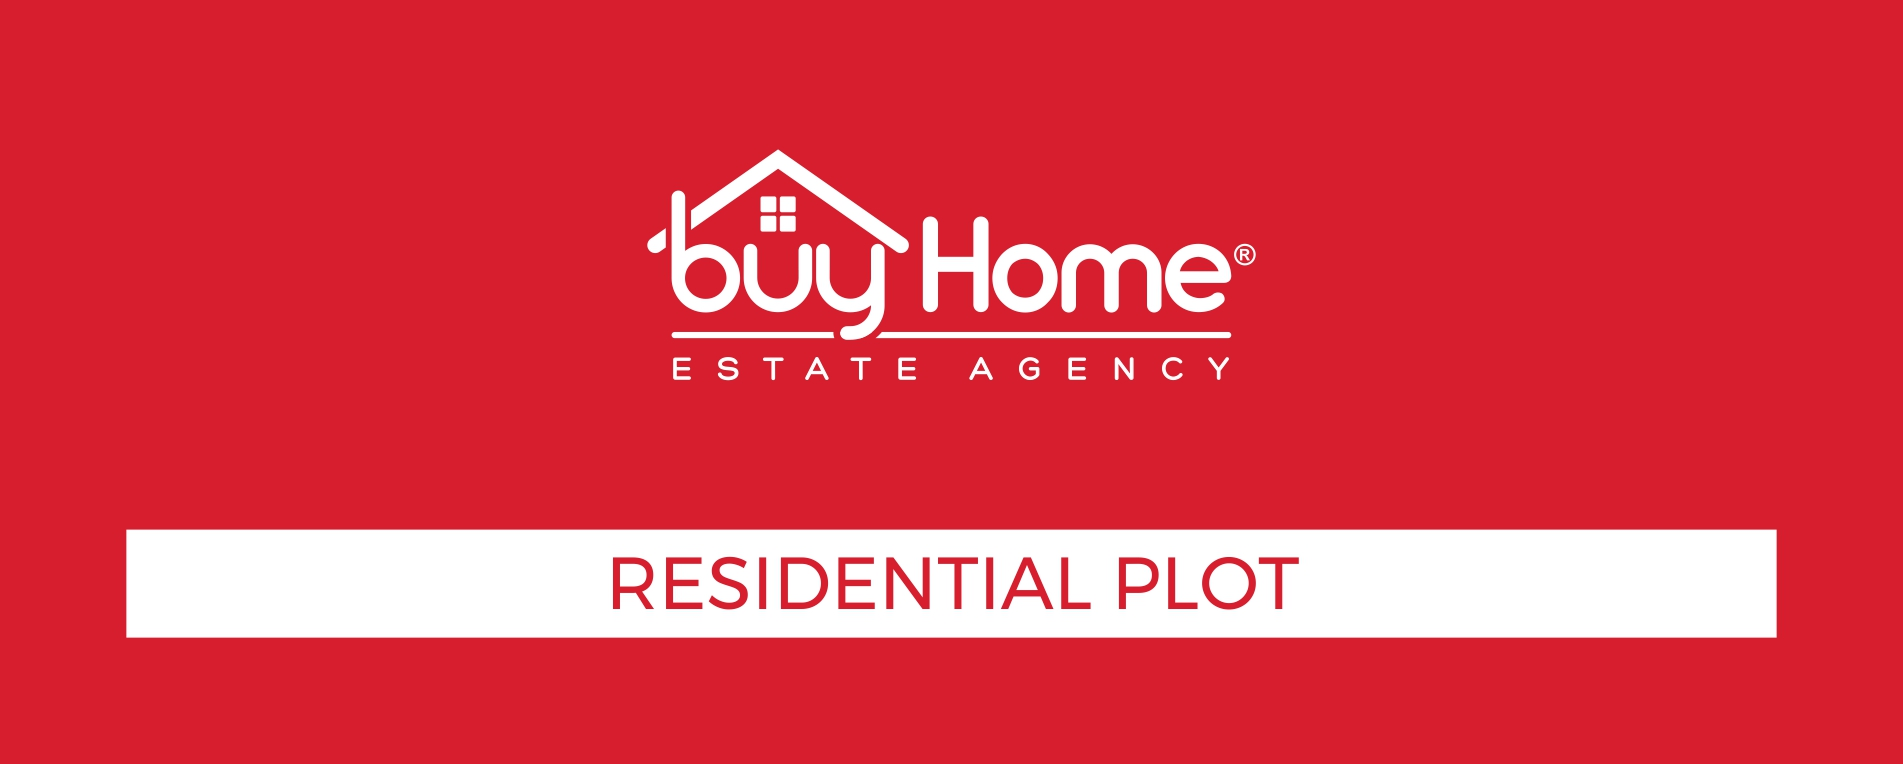 Prime Location Residential Plots | BuyHome